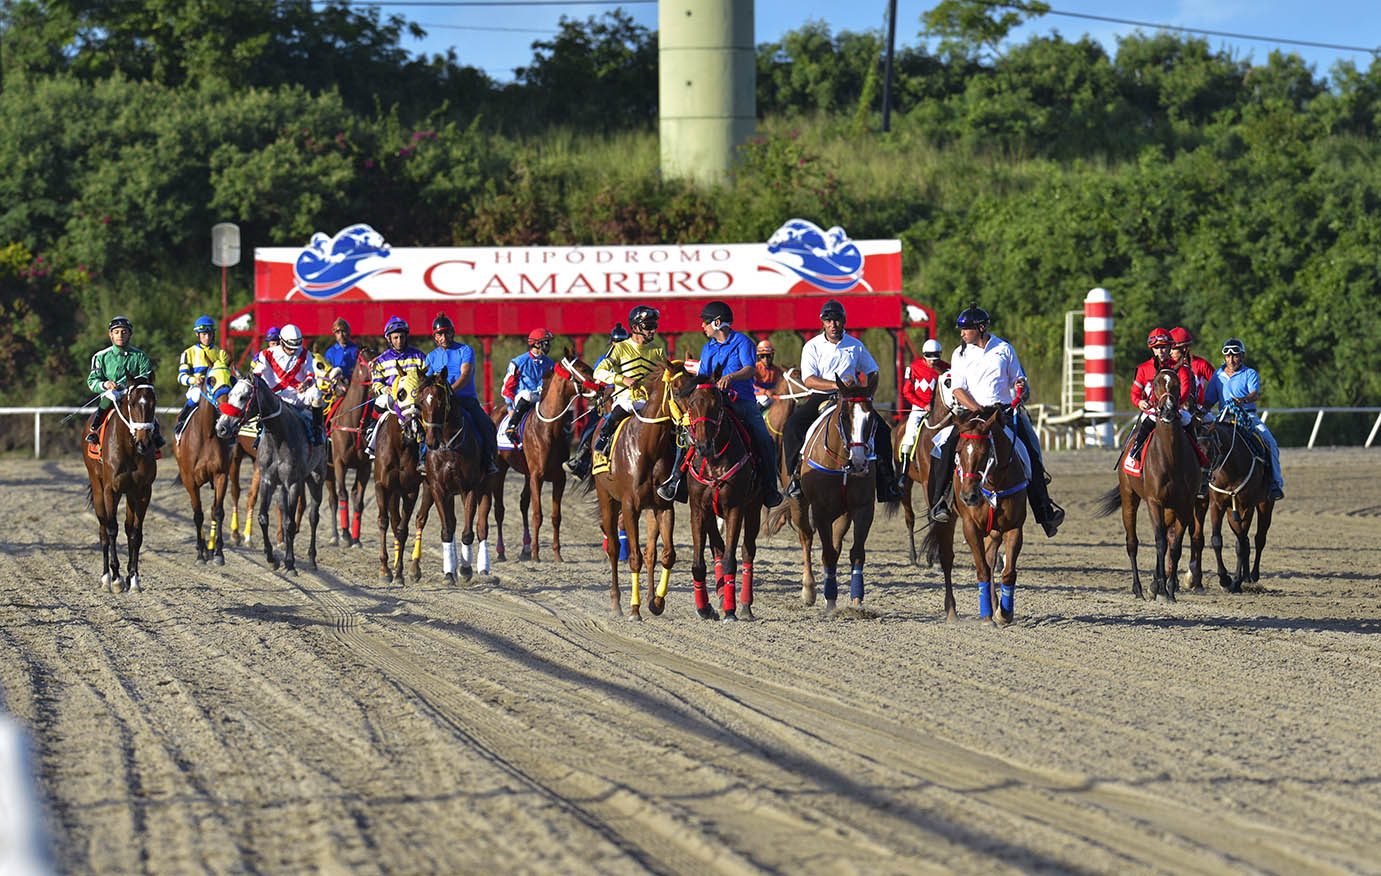 Race days at Camarero racetrack are Thursday, Friday, Saturday, and Sunday with post time at 2:50 p.m.